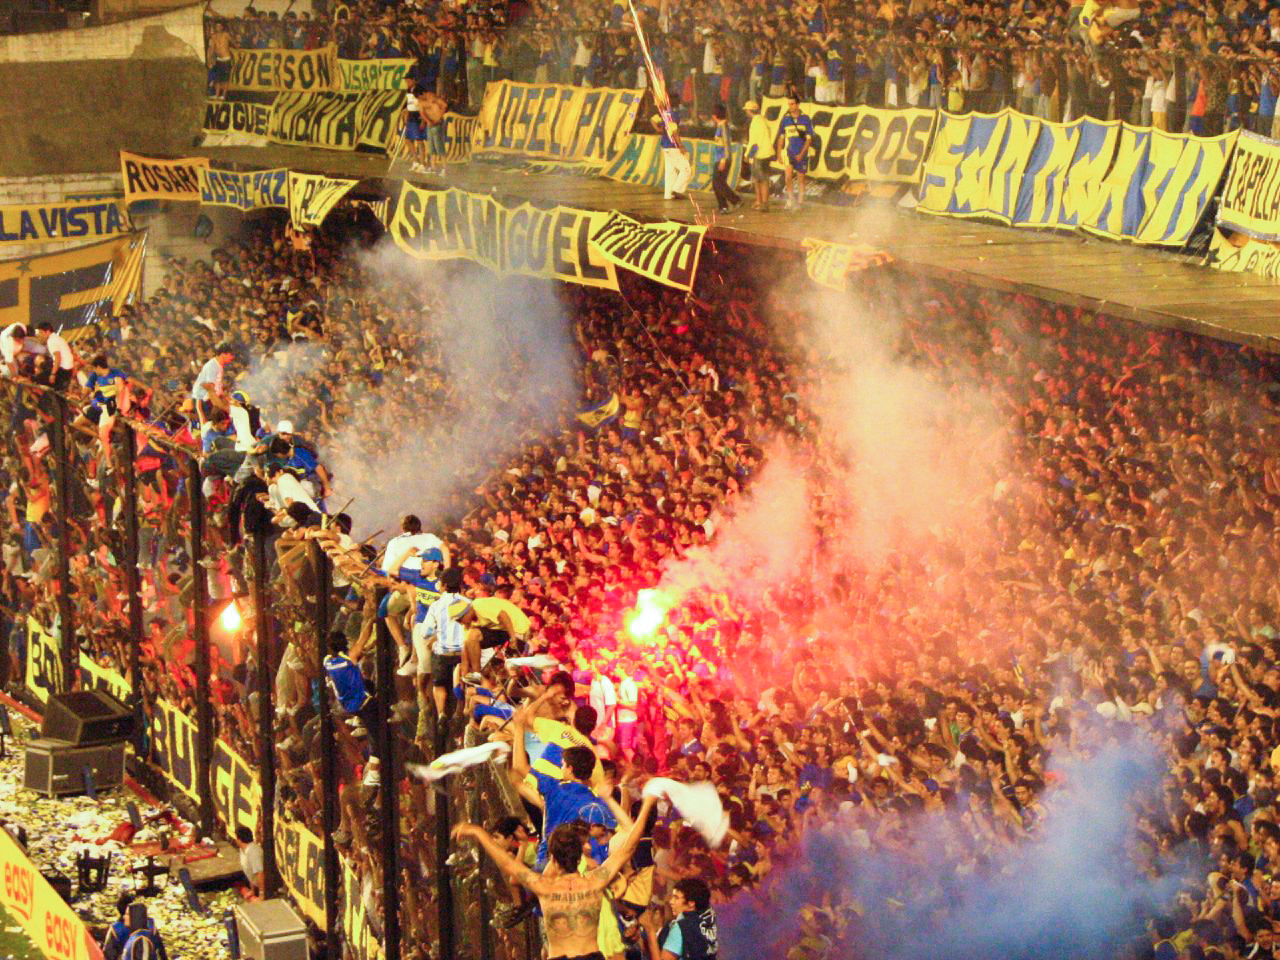 Boca Juniors: File:Boca Juniors Vs. Pumas.jpg